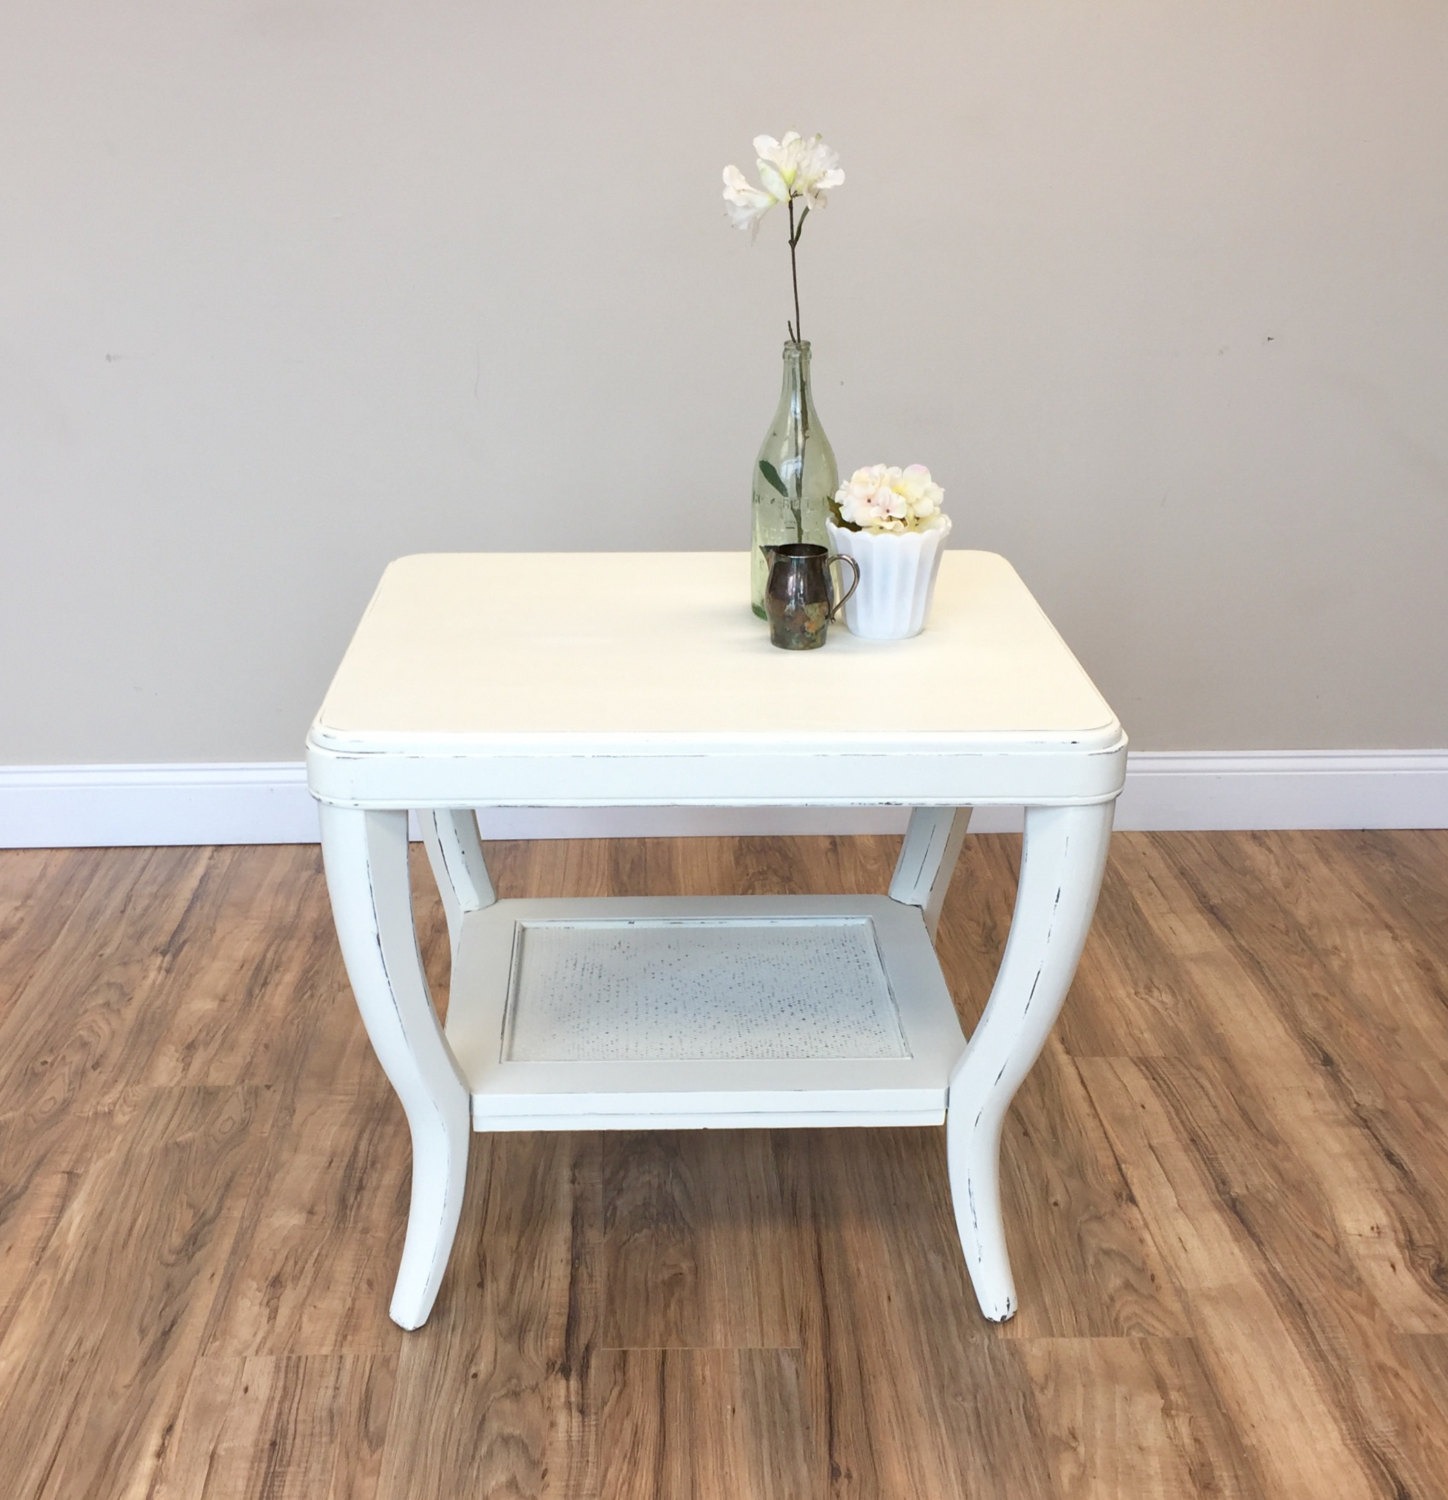 end tables newton find chic accent pieces vintage hip decor white table sofa side farmhouse style chairs ikea wooden storage box coastal beach lamps pier imports patio furniture